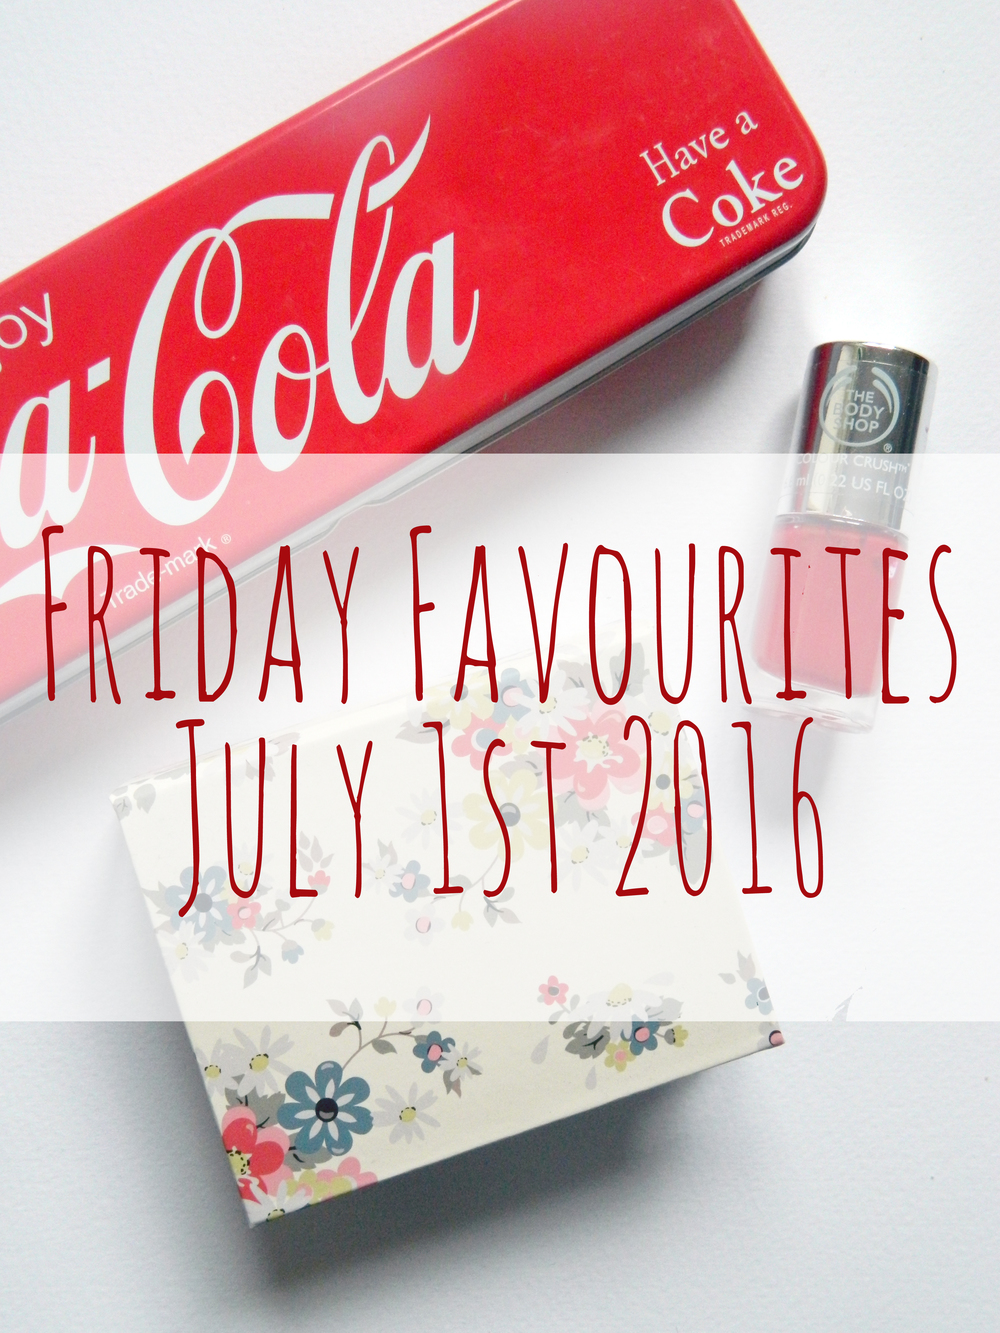 Friday Favourites July 1st 2016.